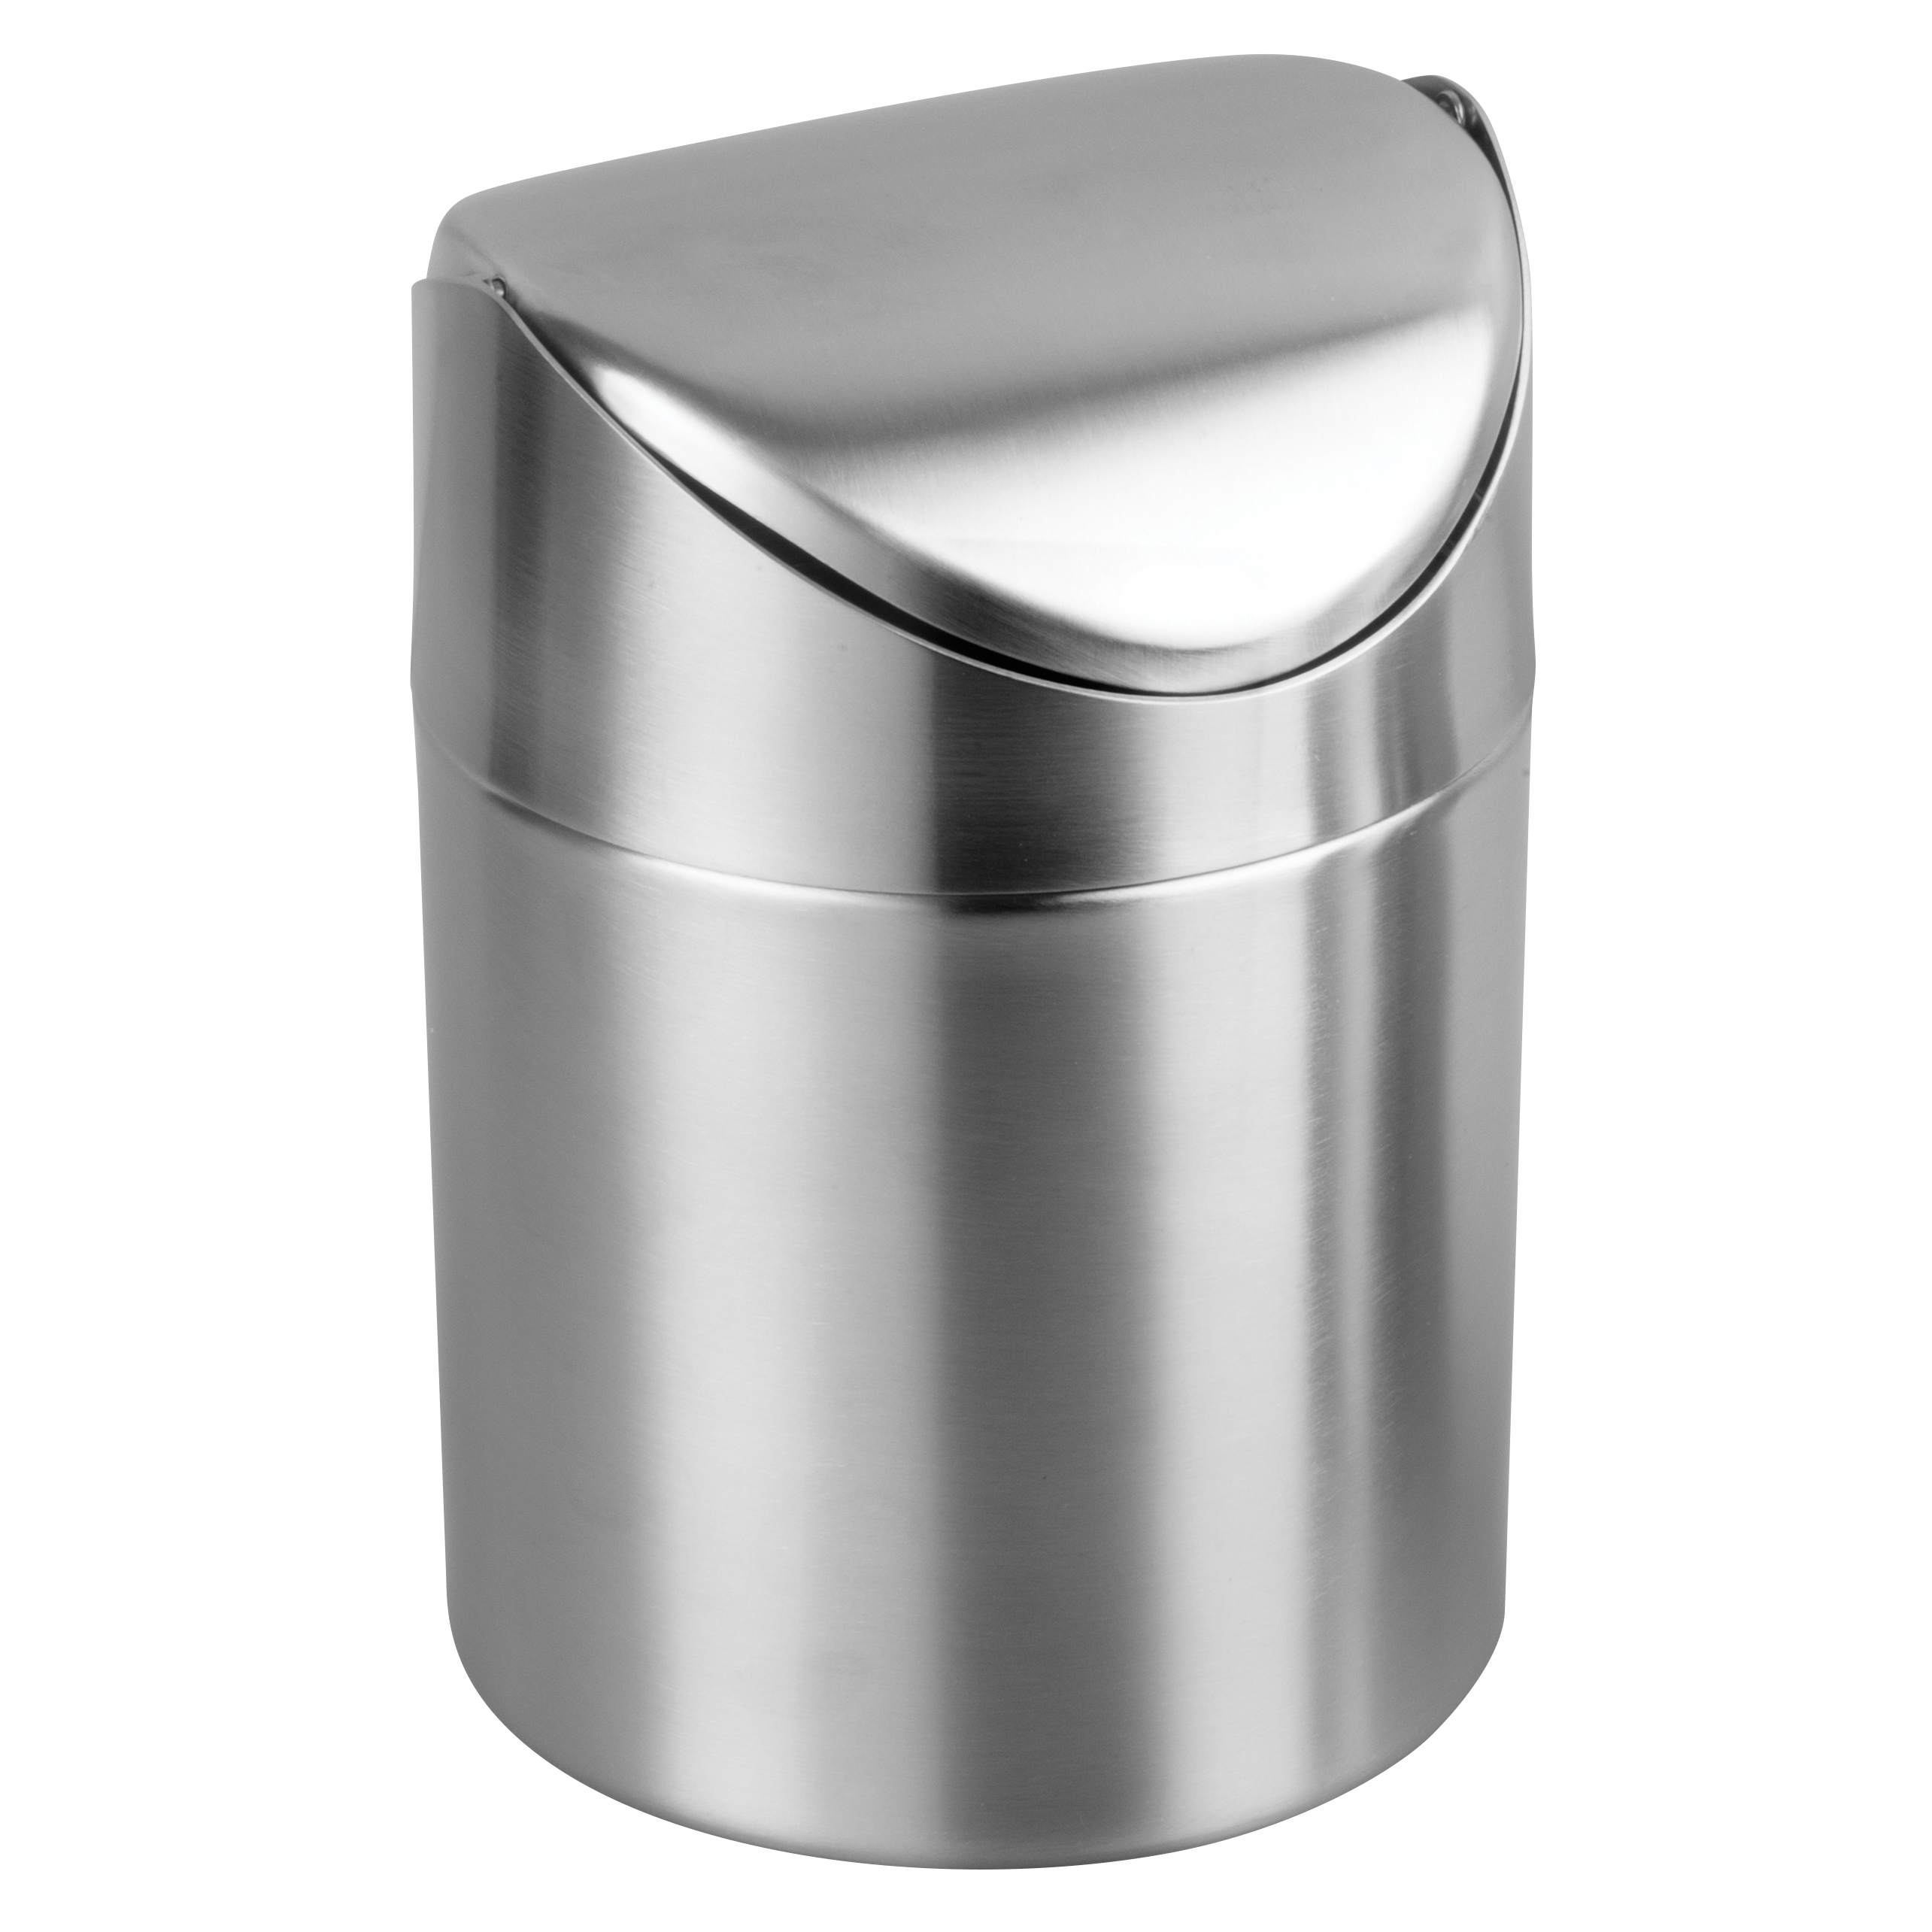 Winco DDSF-101S trash receptacle, countertop